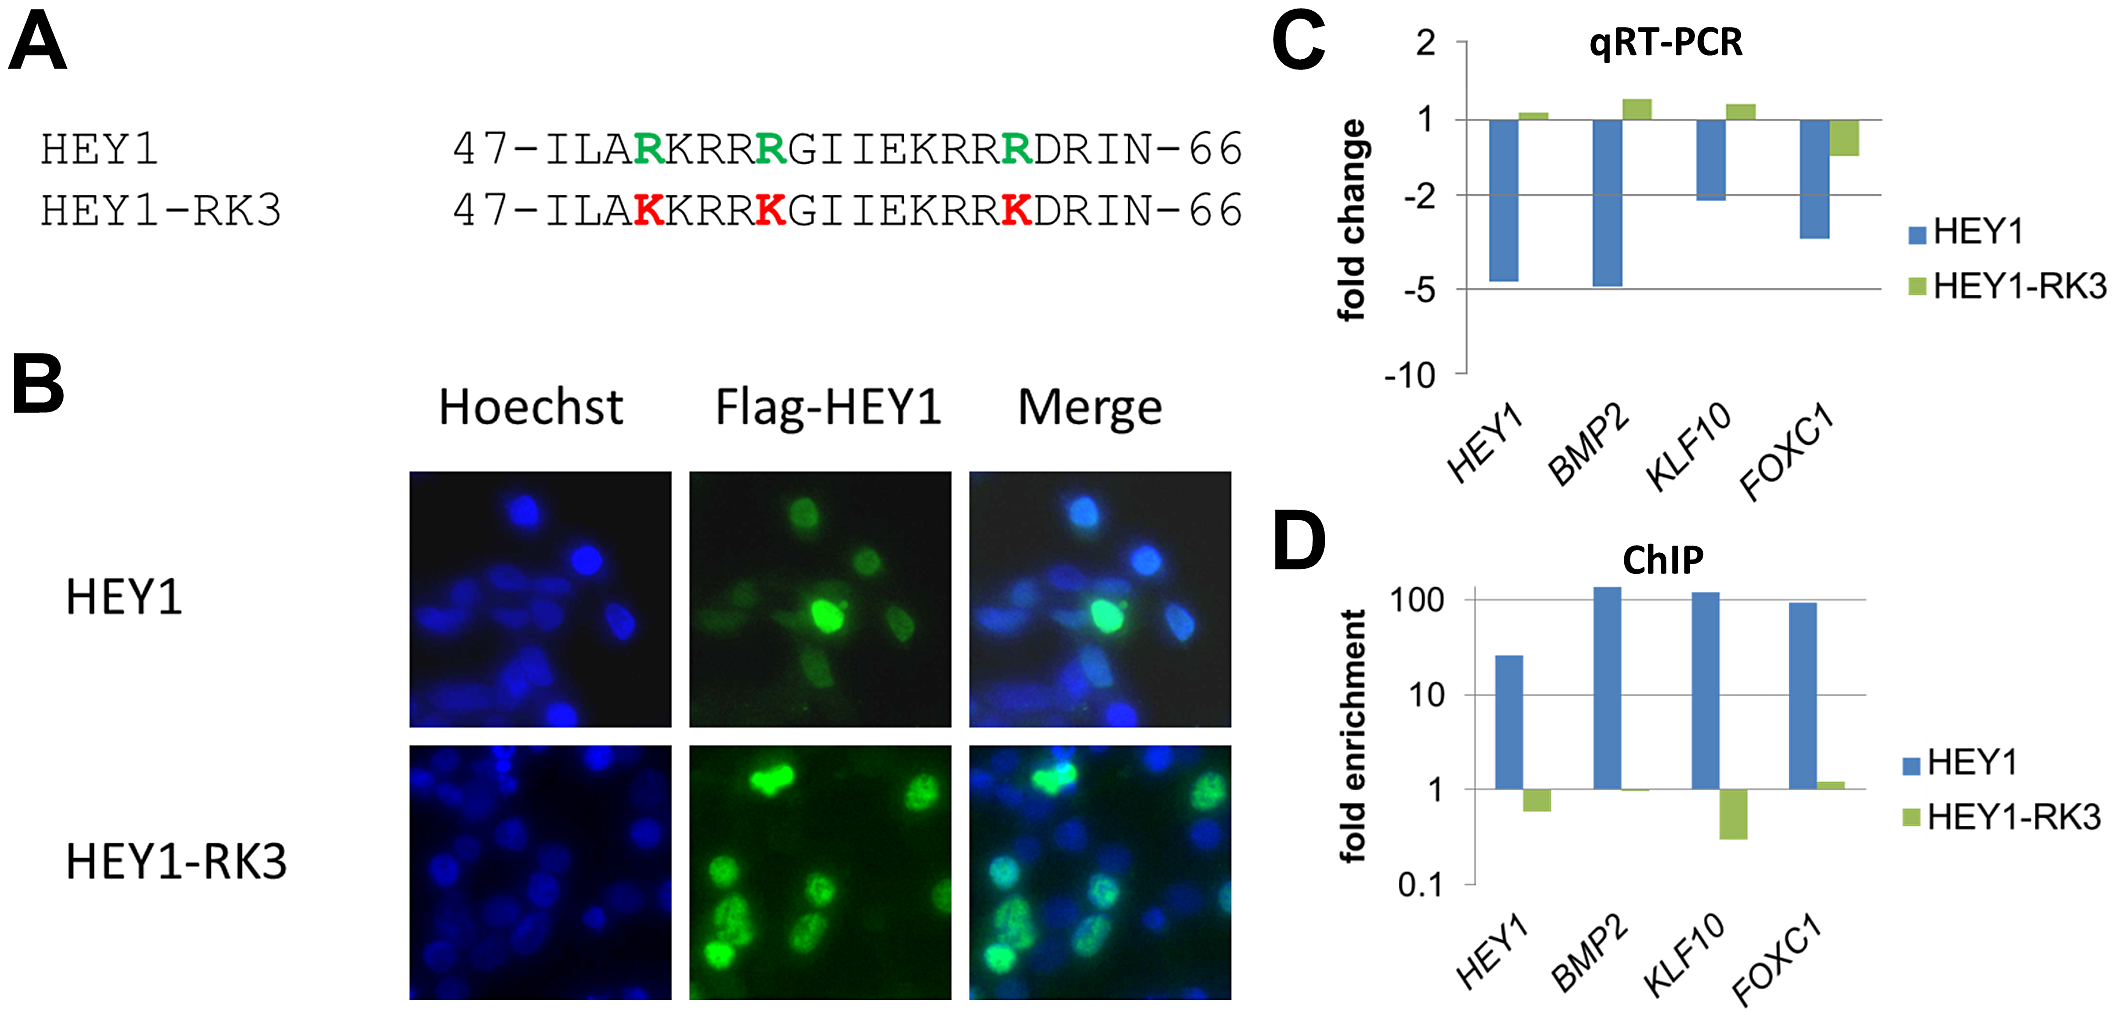 Mutation of putative DNA contacting amino acids in the HEY1 basic domain inactivates its function.